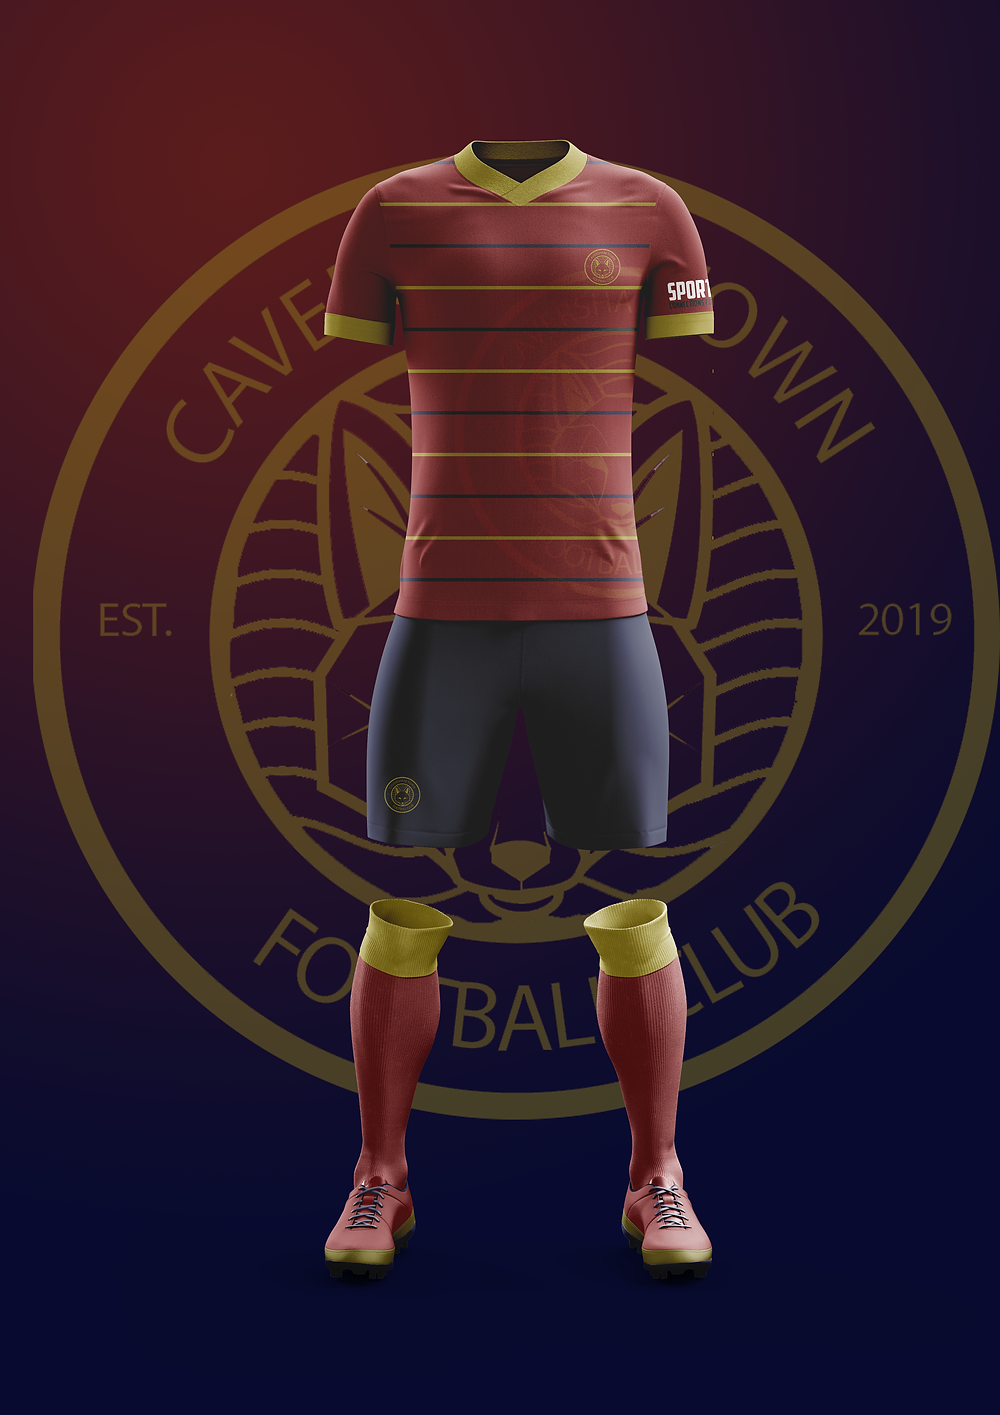 Caversham Town's home kit, designed by Sports Connections Foundation's very own Jackson!